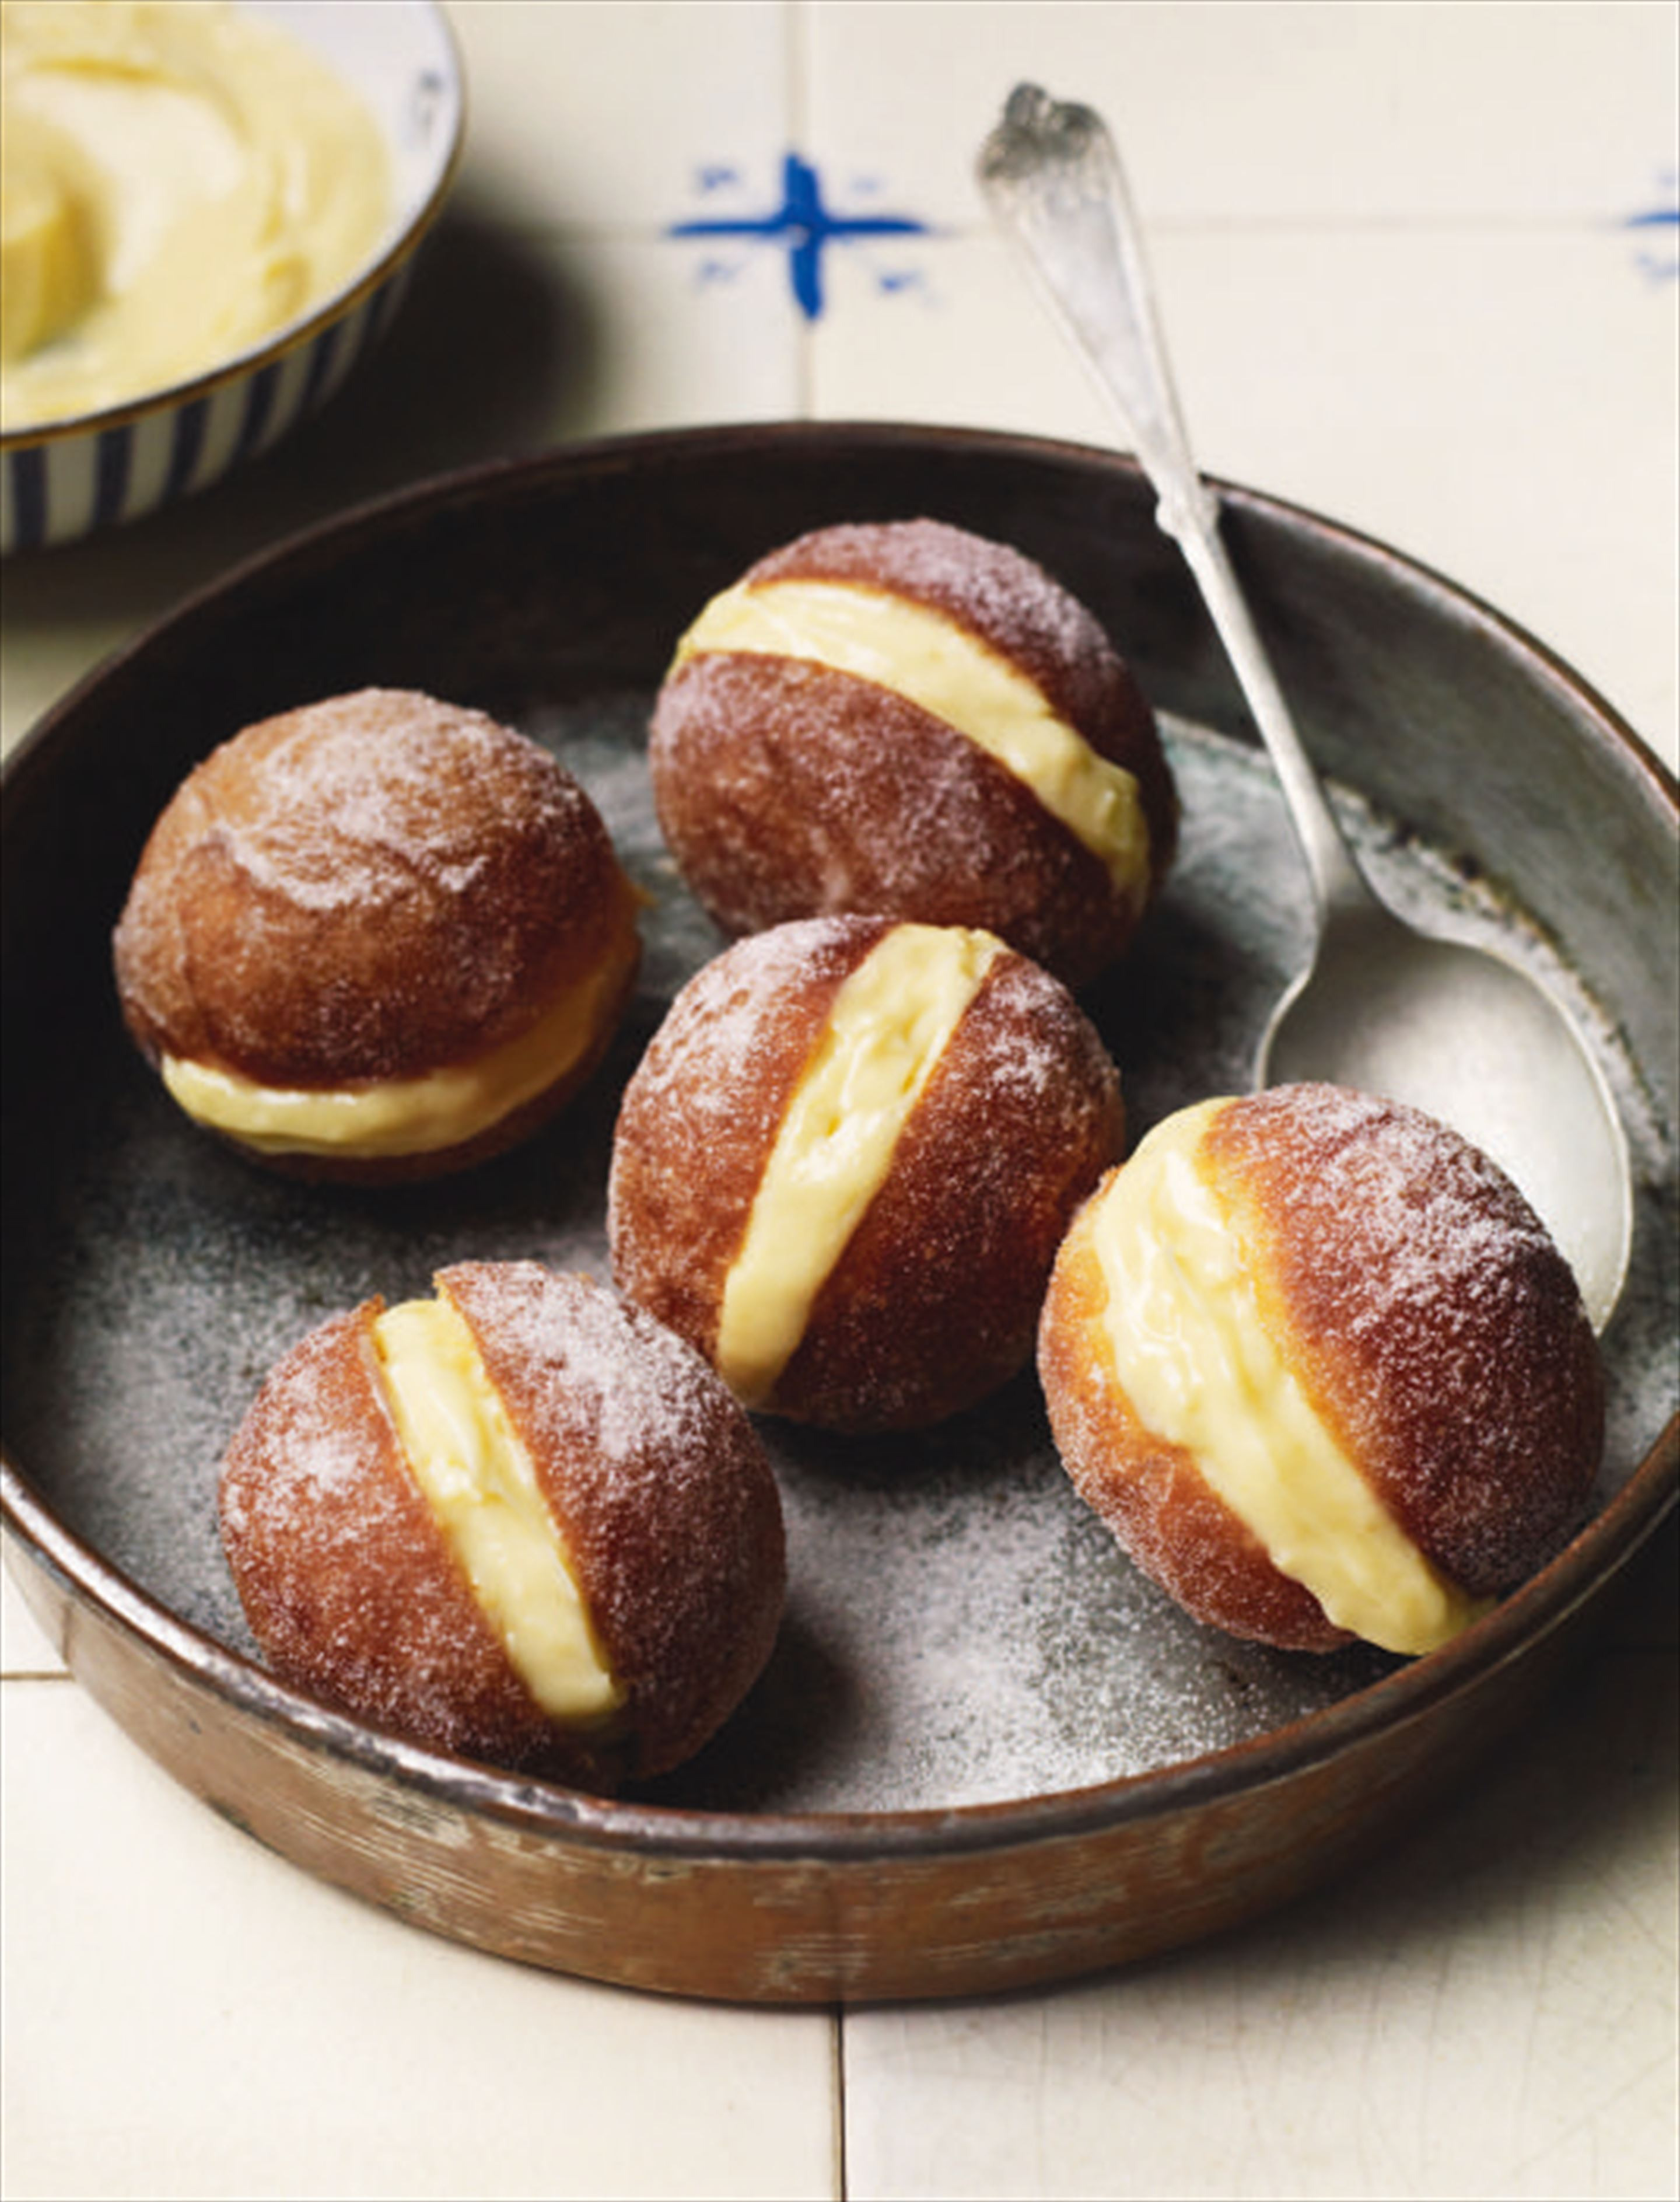 Custard-filled doughnuts